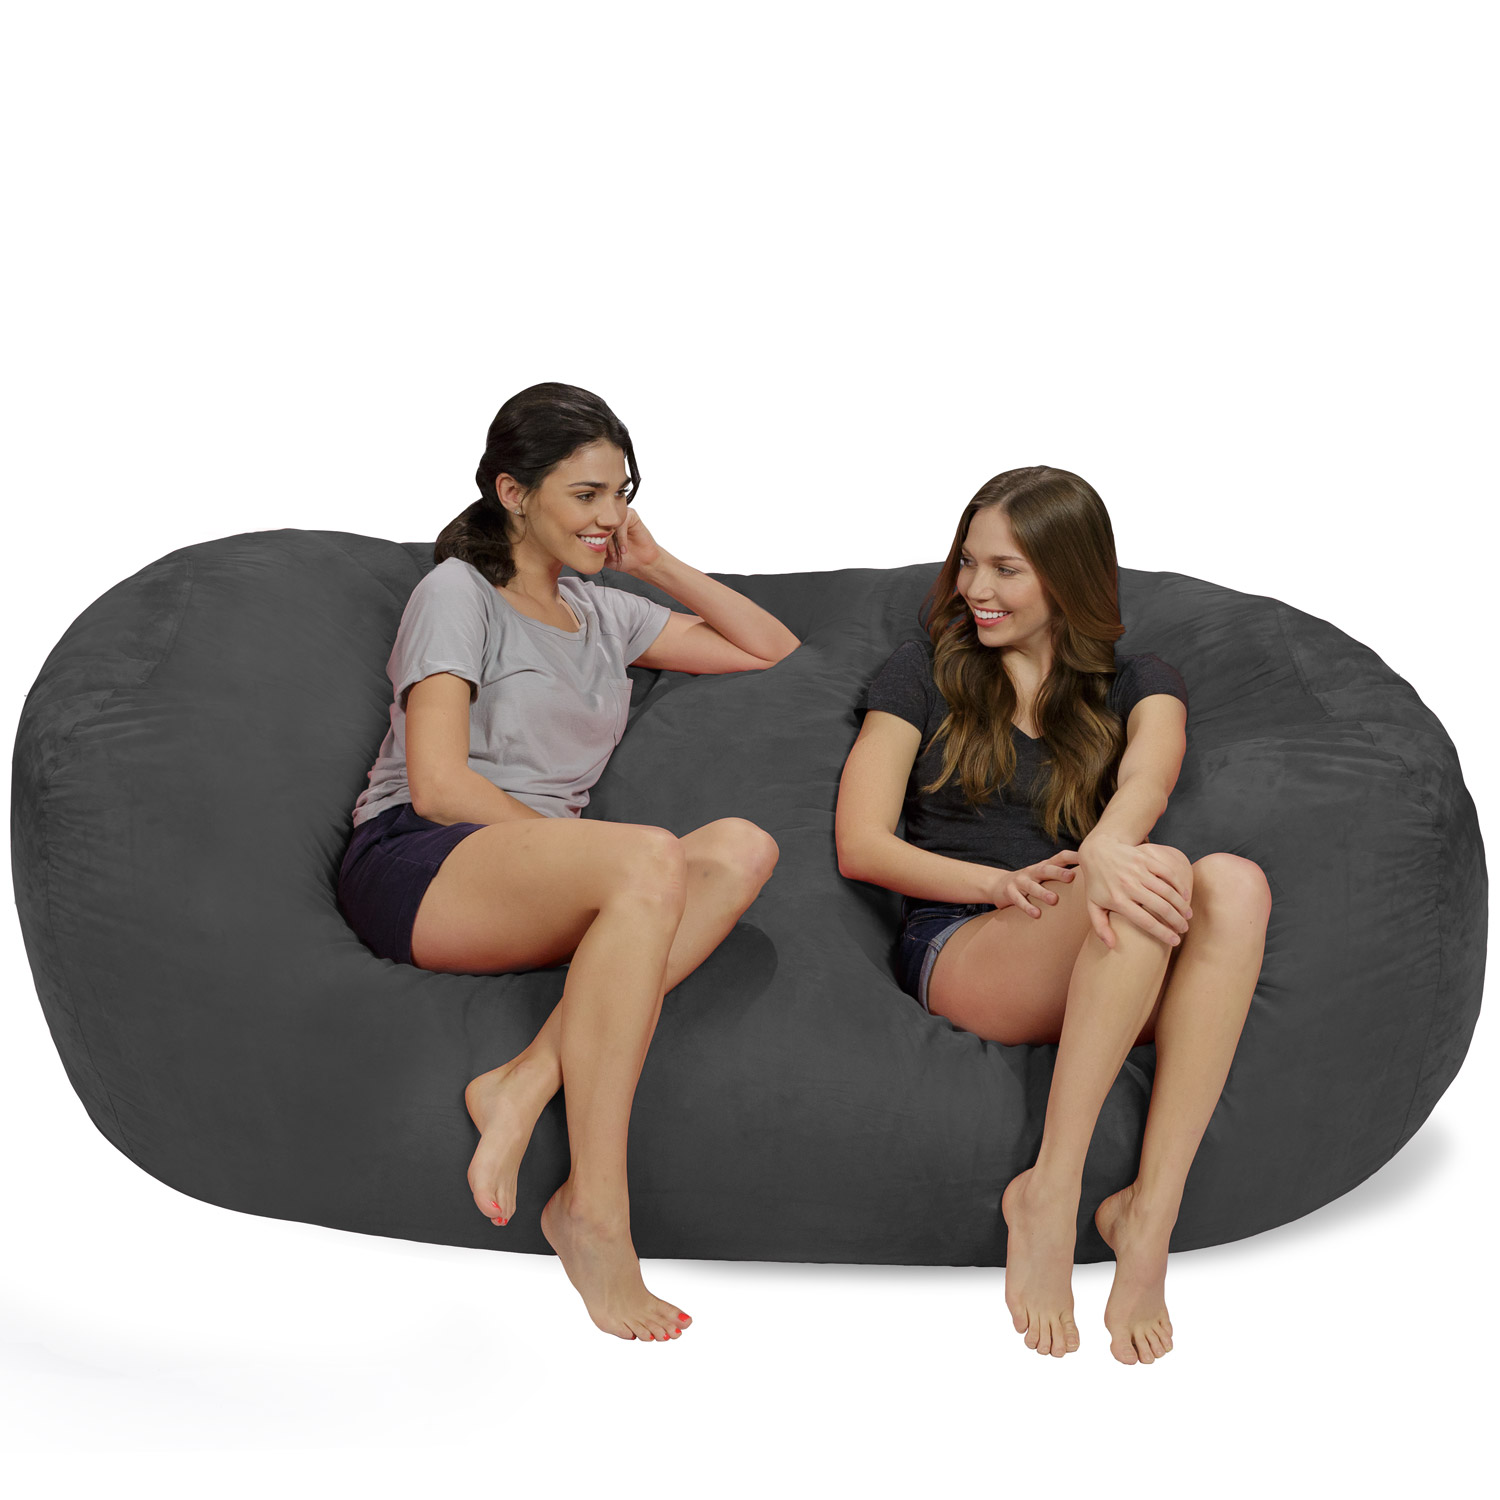 Giant Bean Bag Lounger -7.5 ft